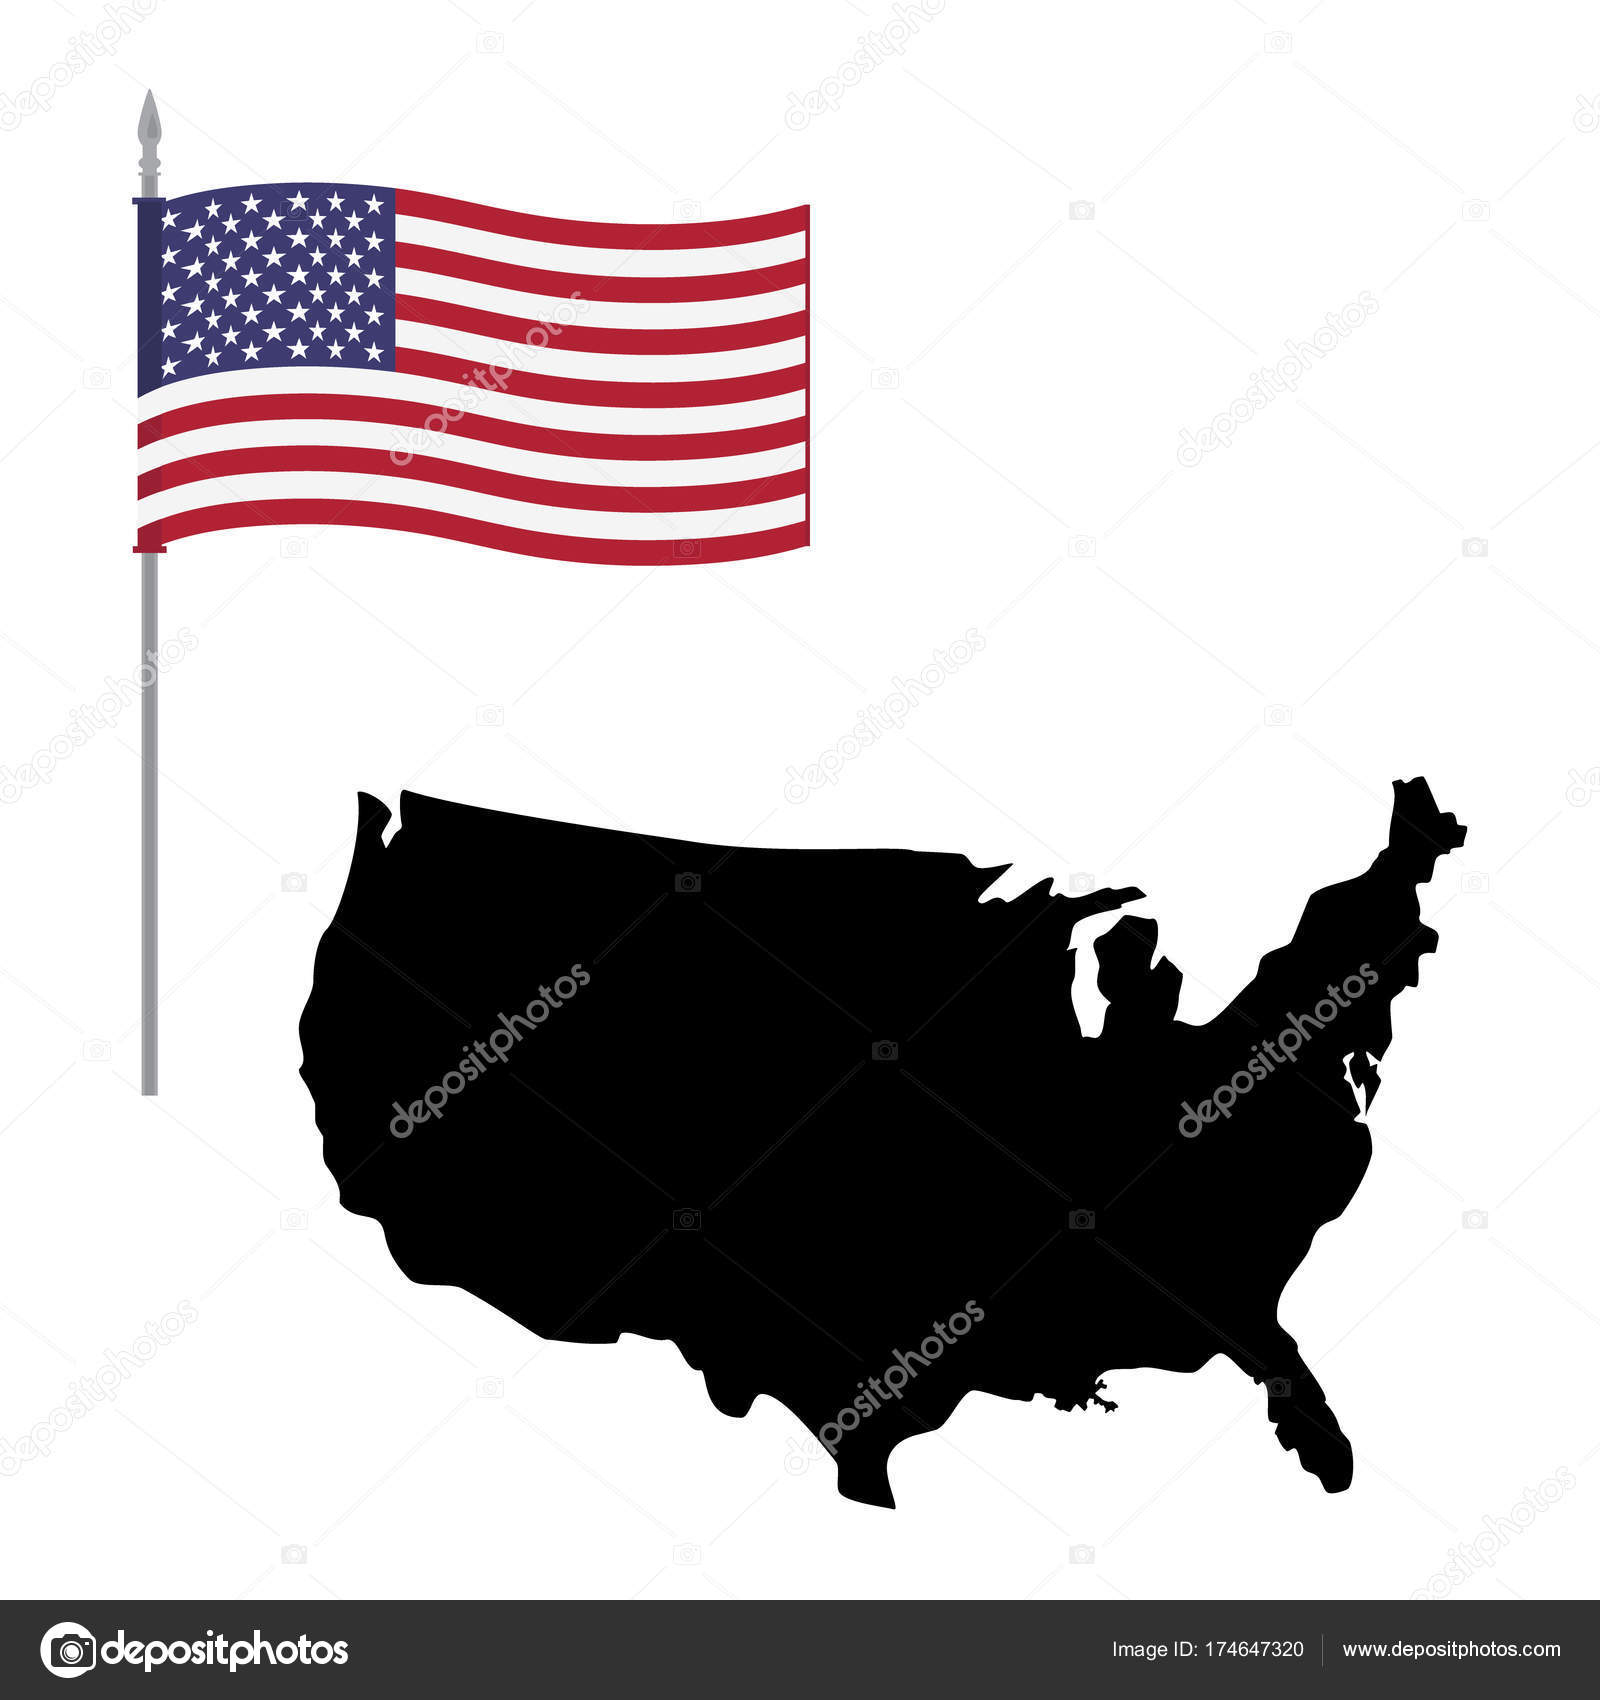 USA map and flag icon — Stock Photo © viktorijareut #174647320